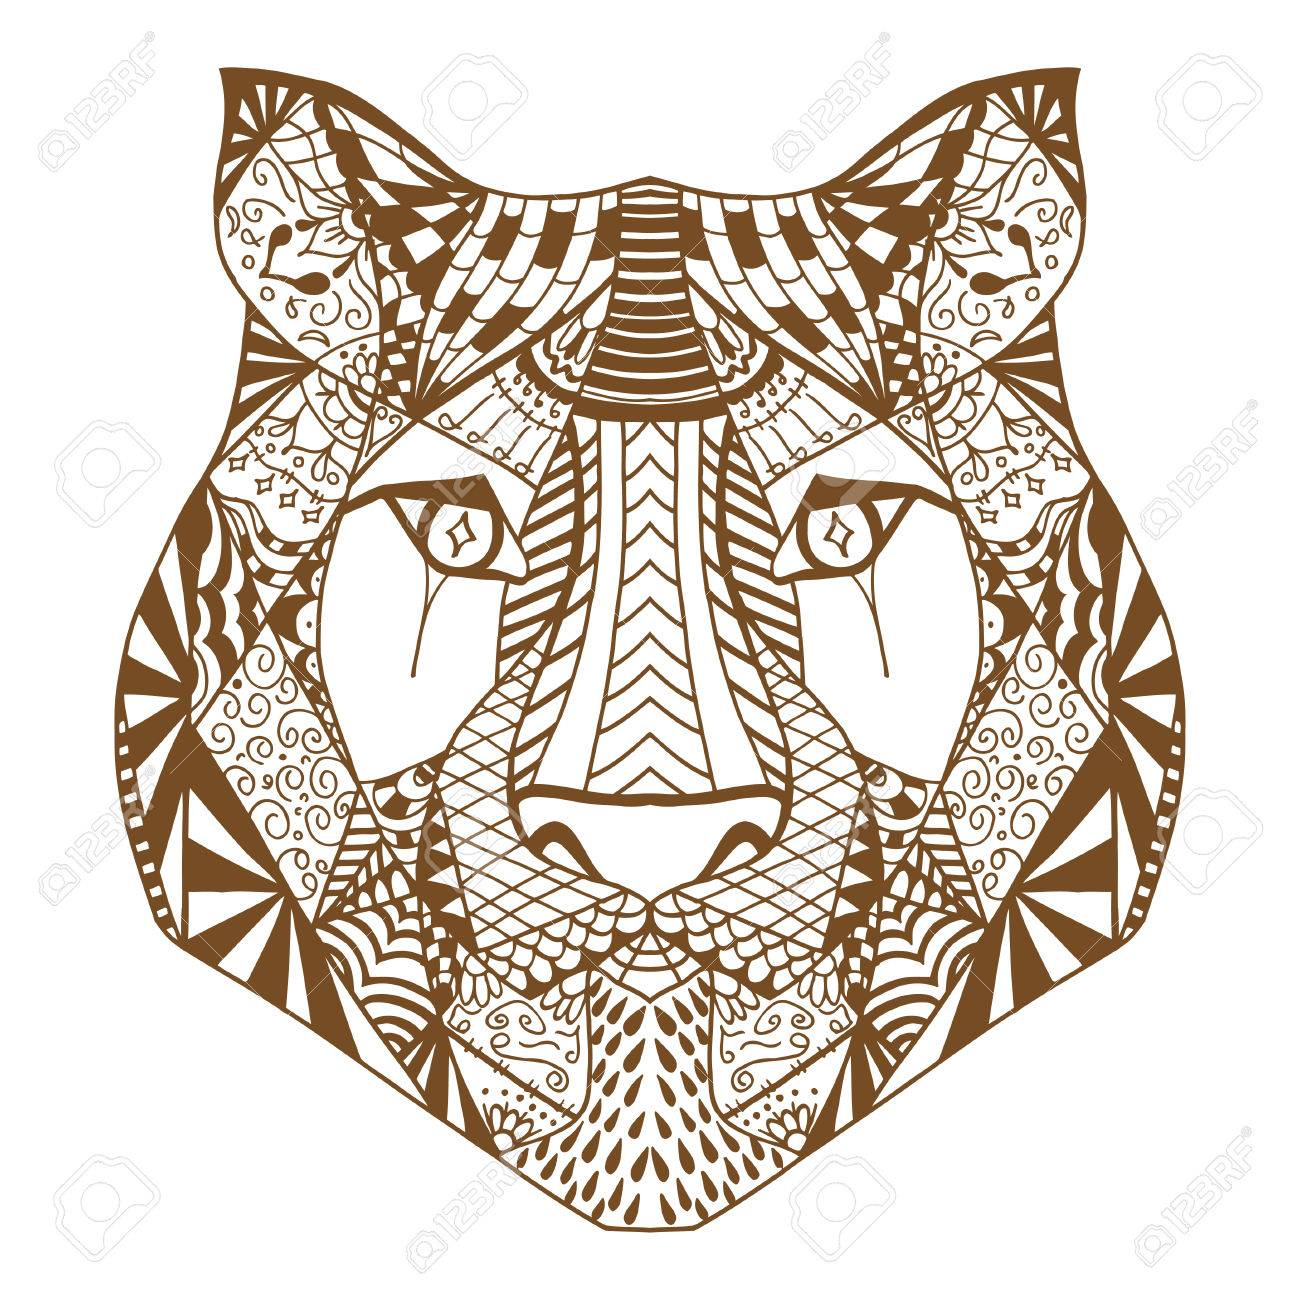 Tiger Head Adult Antistress Coloring Page Brown White Hand Drawn Doodle Animal Ethnic